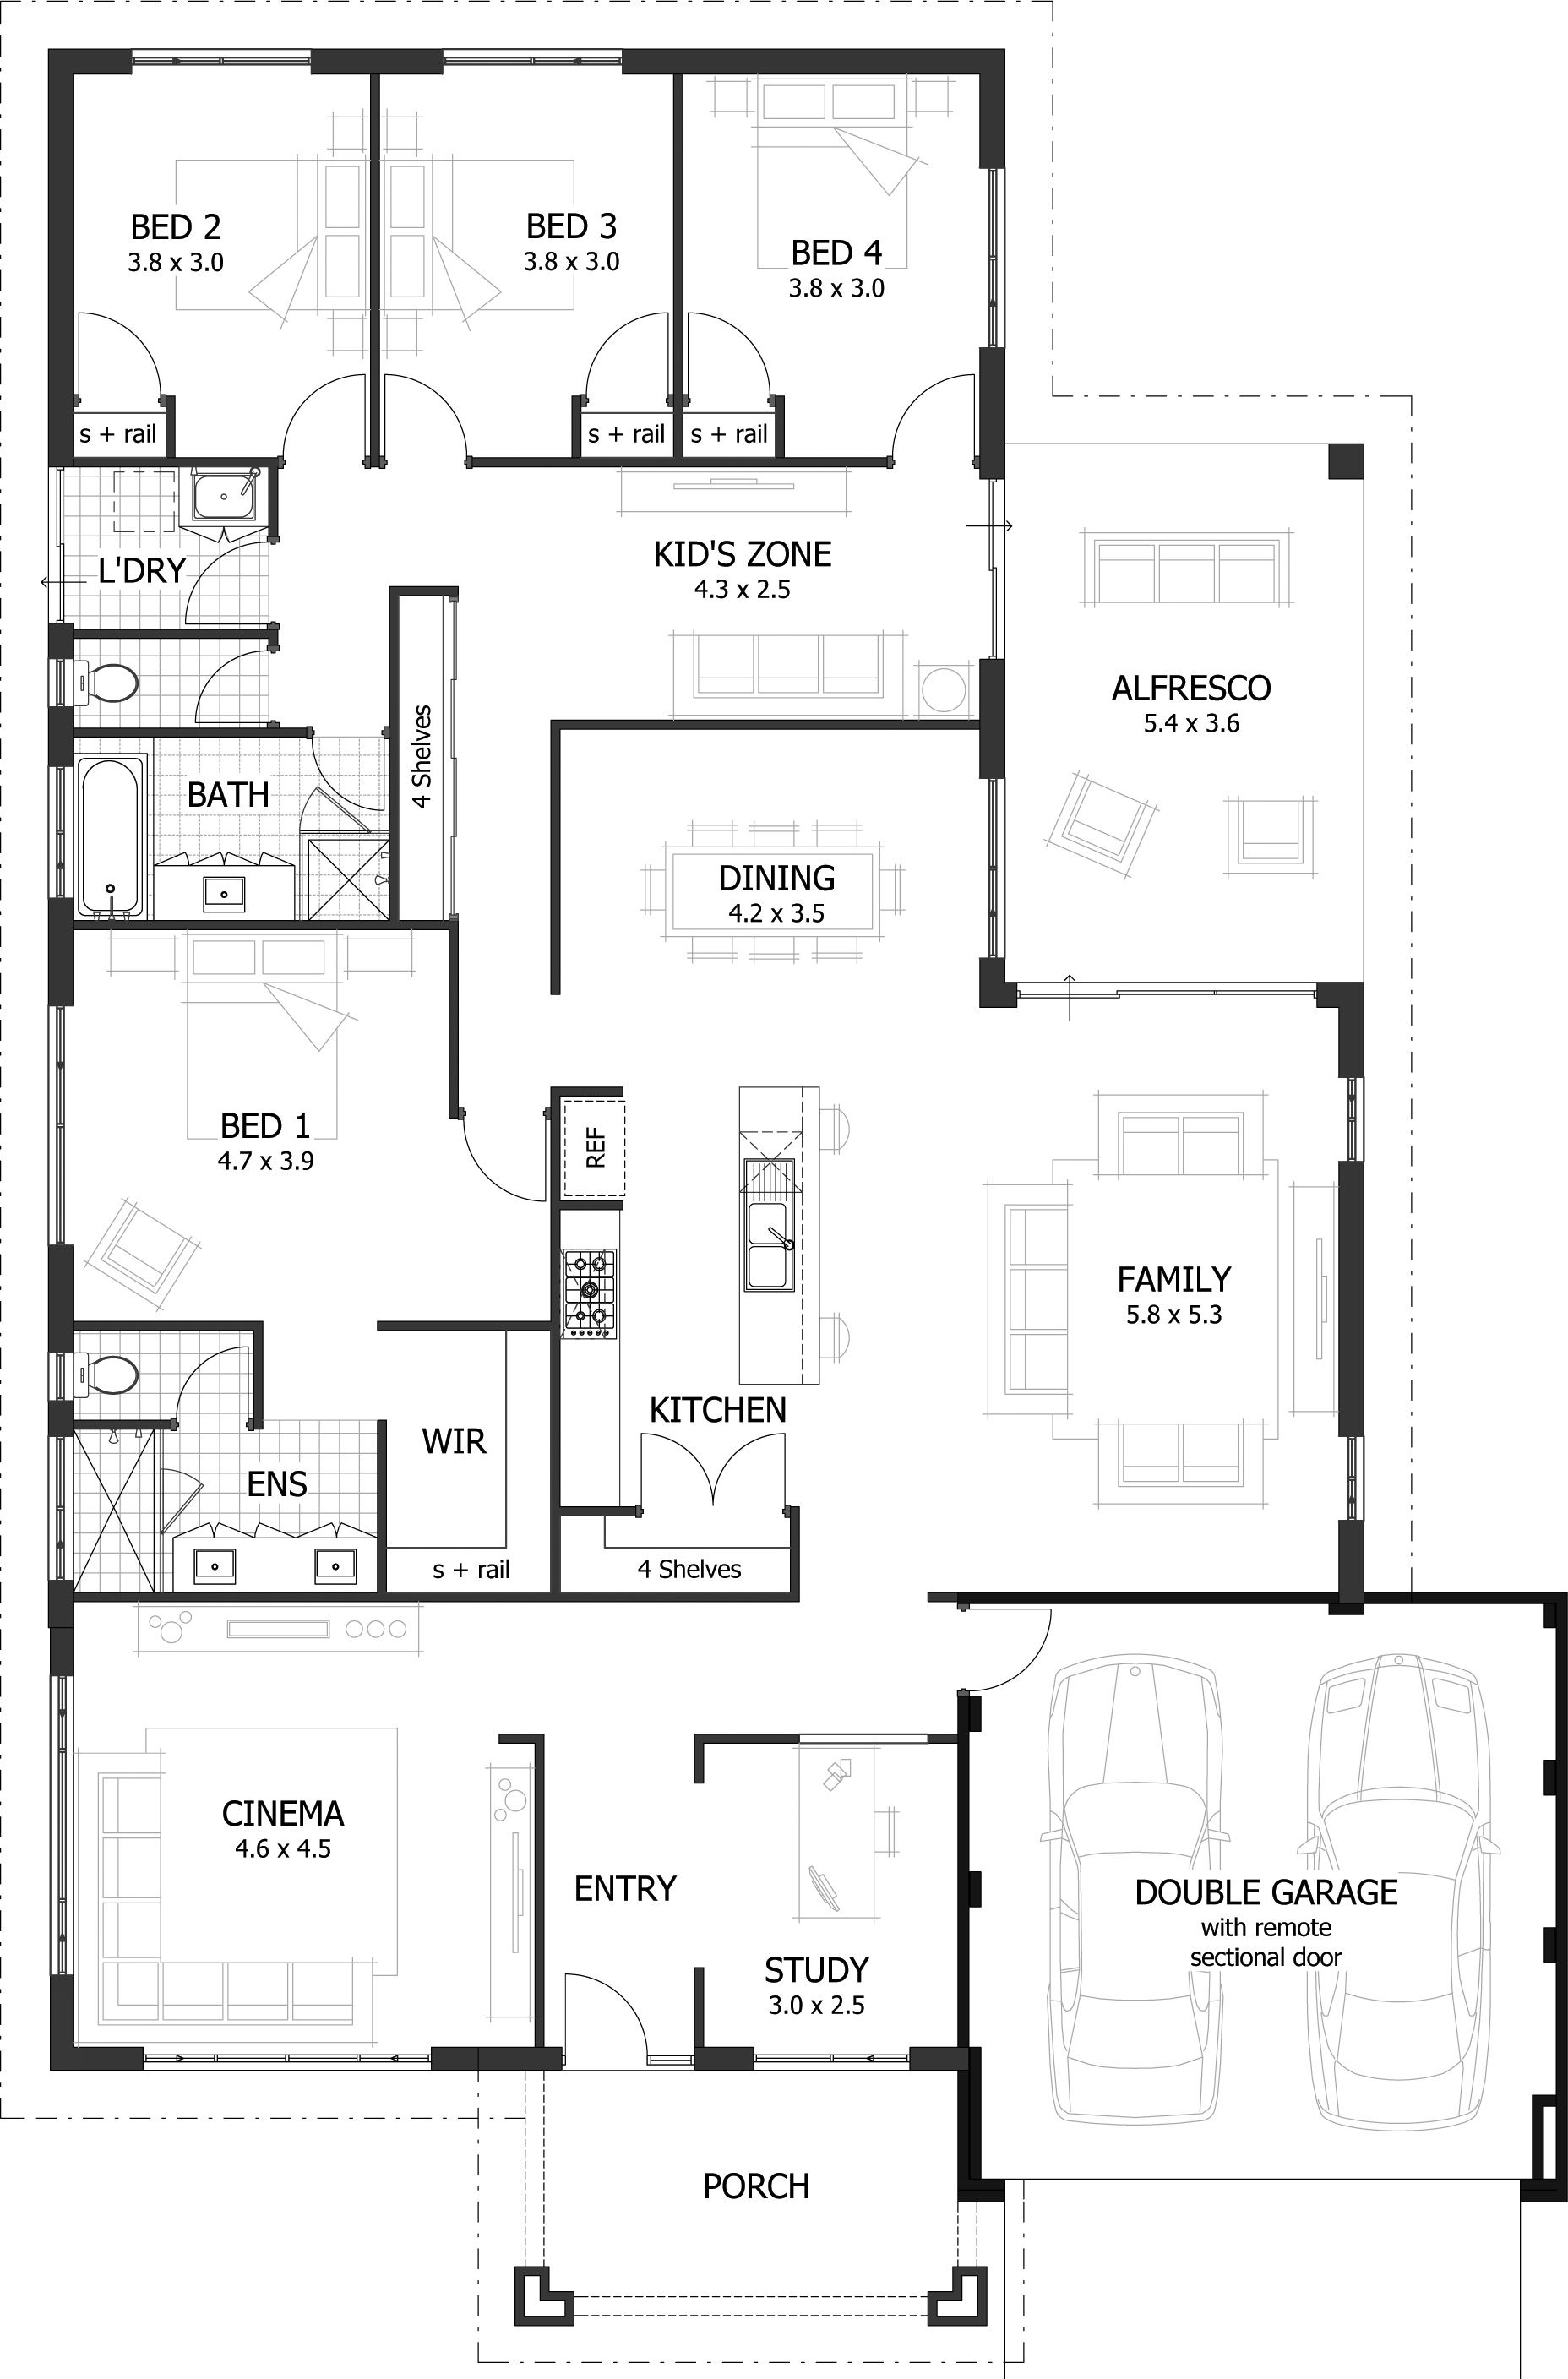 Exceptional 4 Bedroom House Plans U0026 Home Designs | Celebration Homes